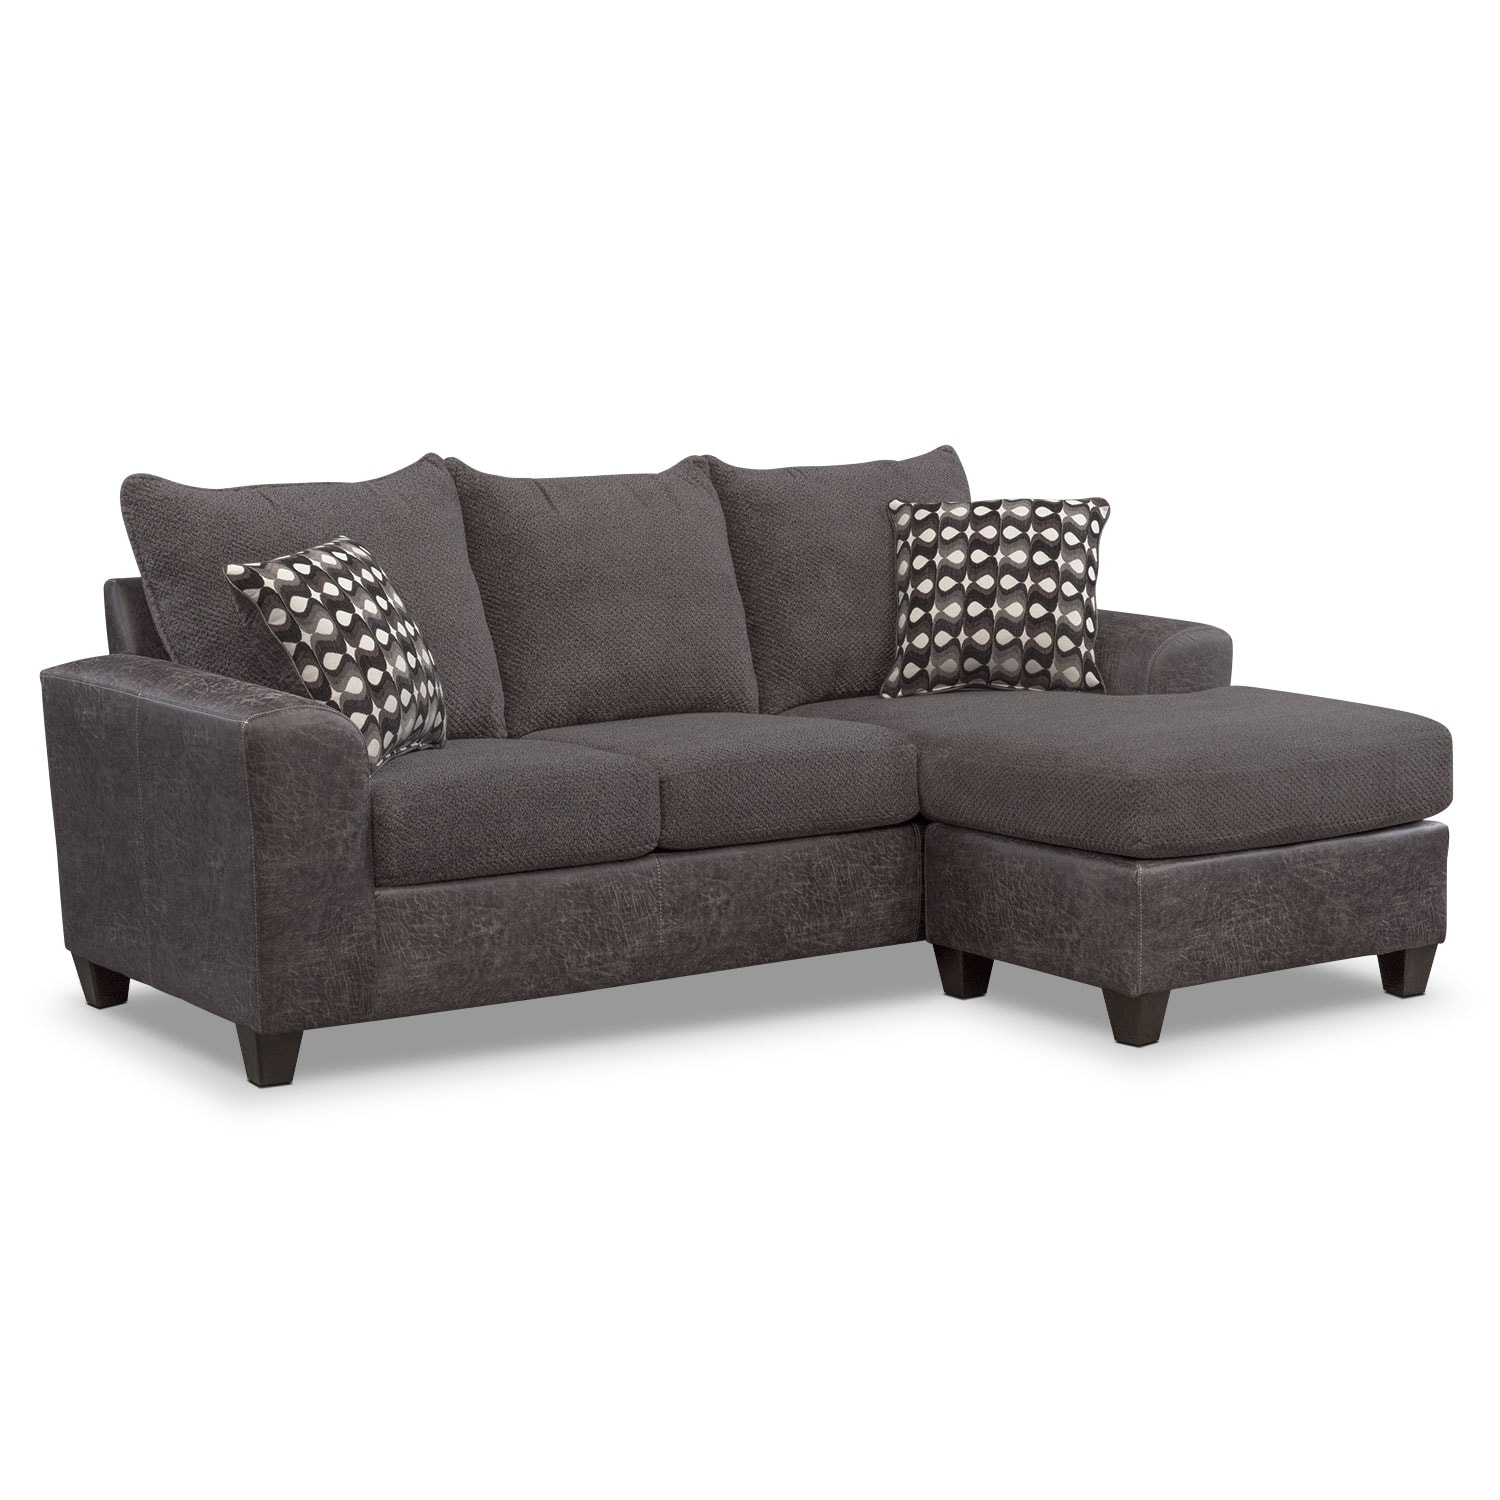 Living Room Furniture Jacksonville Nc sofas & couches | living room seating | american signature furniture